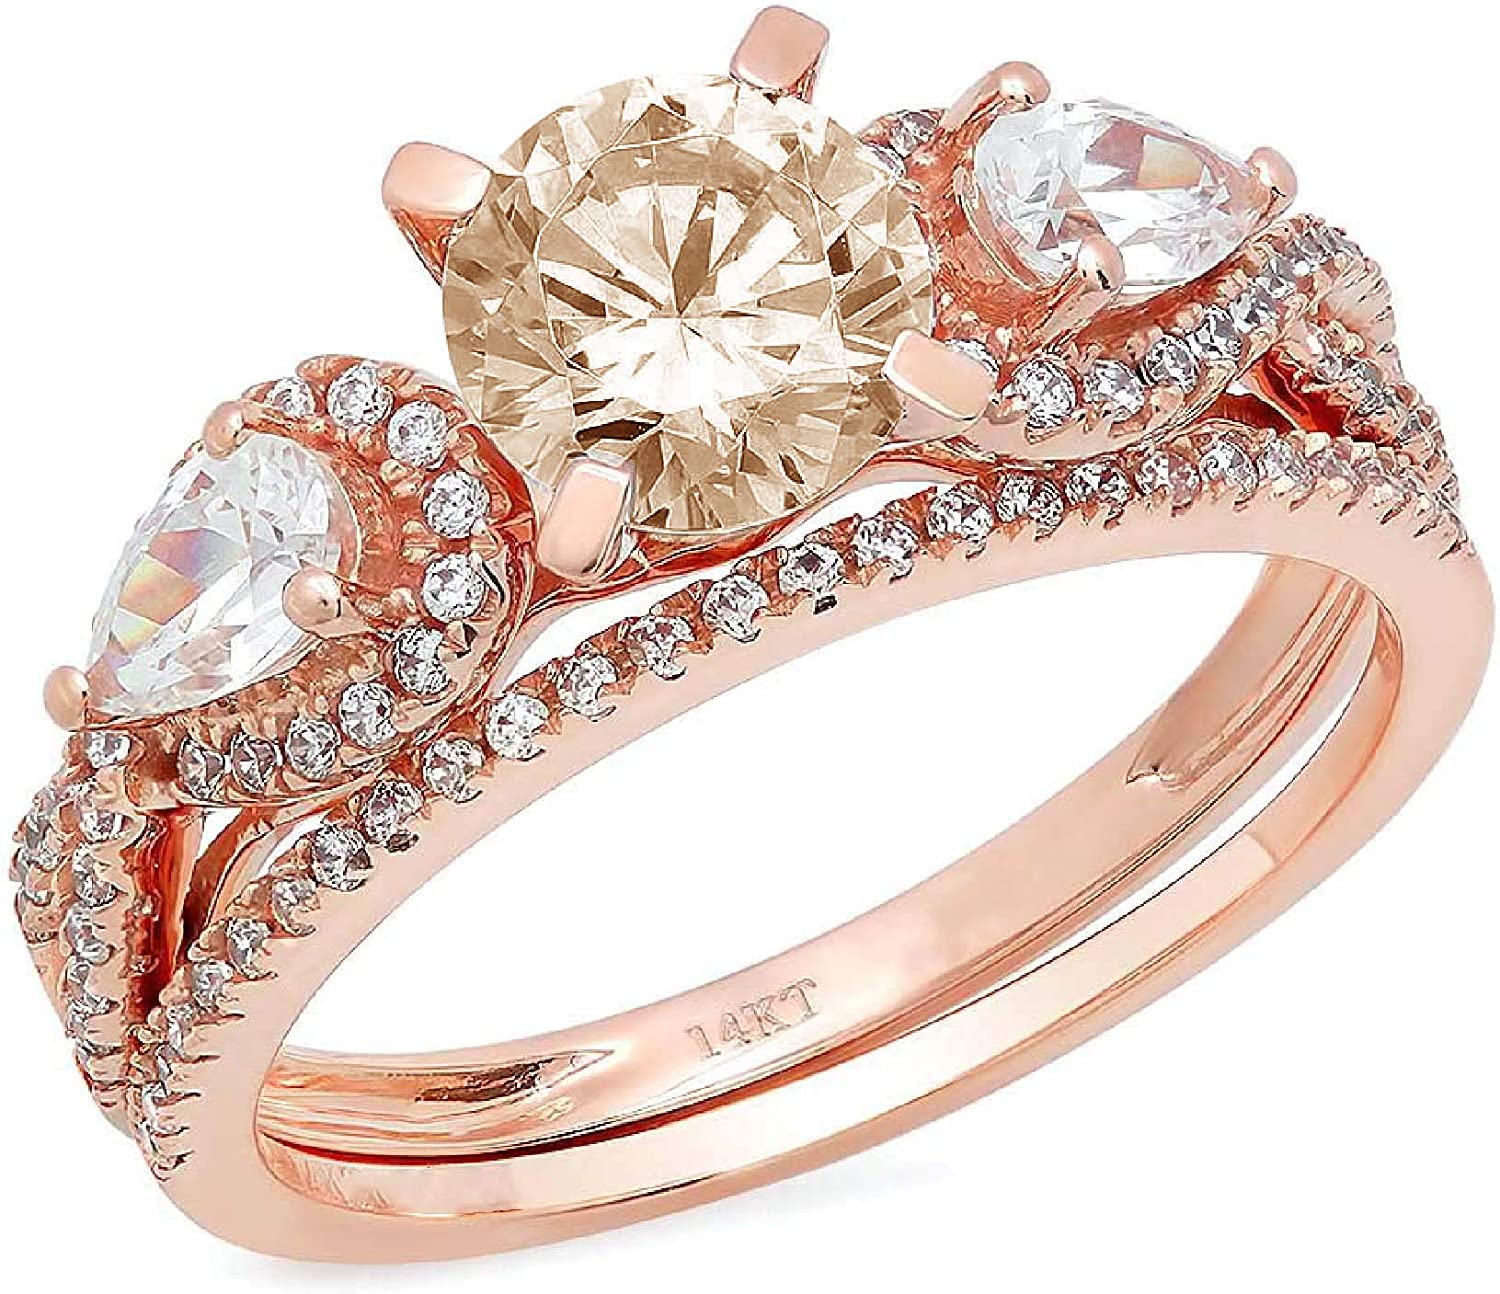 1.97ct Round Pear Cut Solitaire 3 stone With Accent Brown Champagne Simulated Diamond Designer Statement Classic Ring Band Set Real Solid 14k Rose Gold